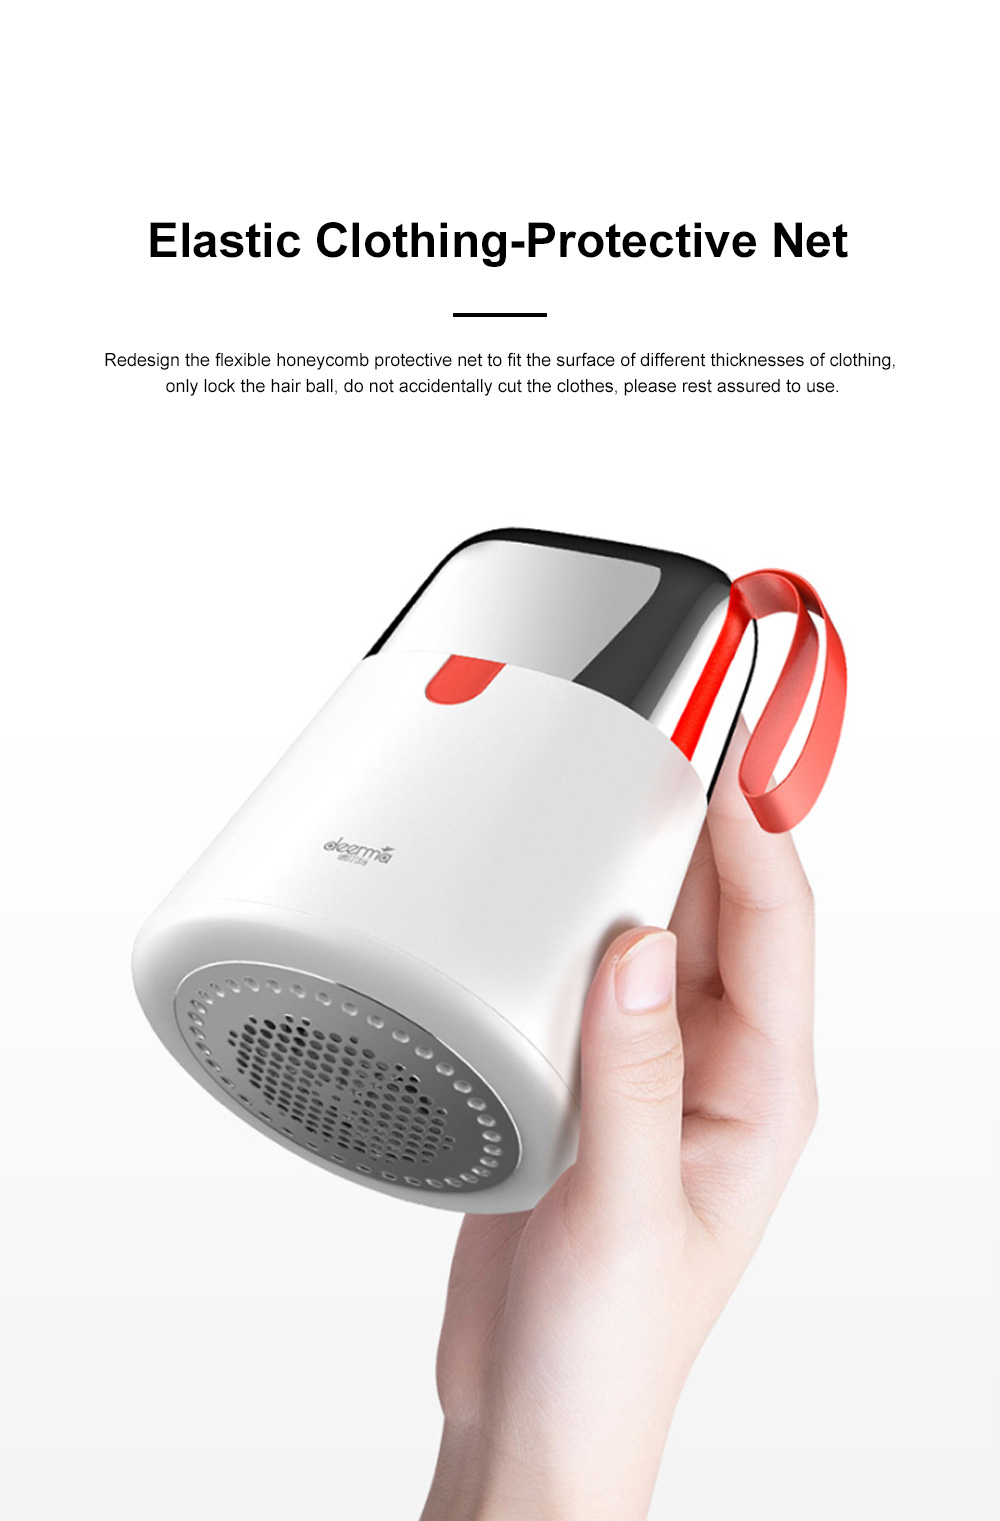 DEERMA 2 in 1 Hair Ball Fuzzing Trimmer USB Rechargeable Fabric Remover with 3-leaf Floating Head for Sweater Clothes Care 5